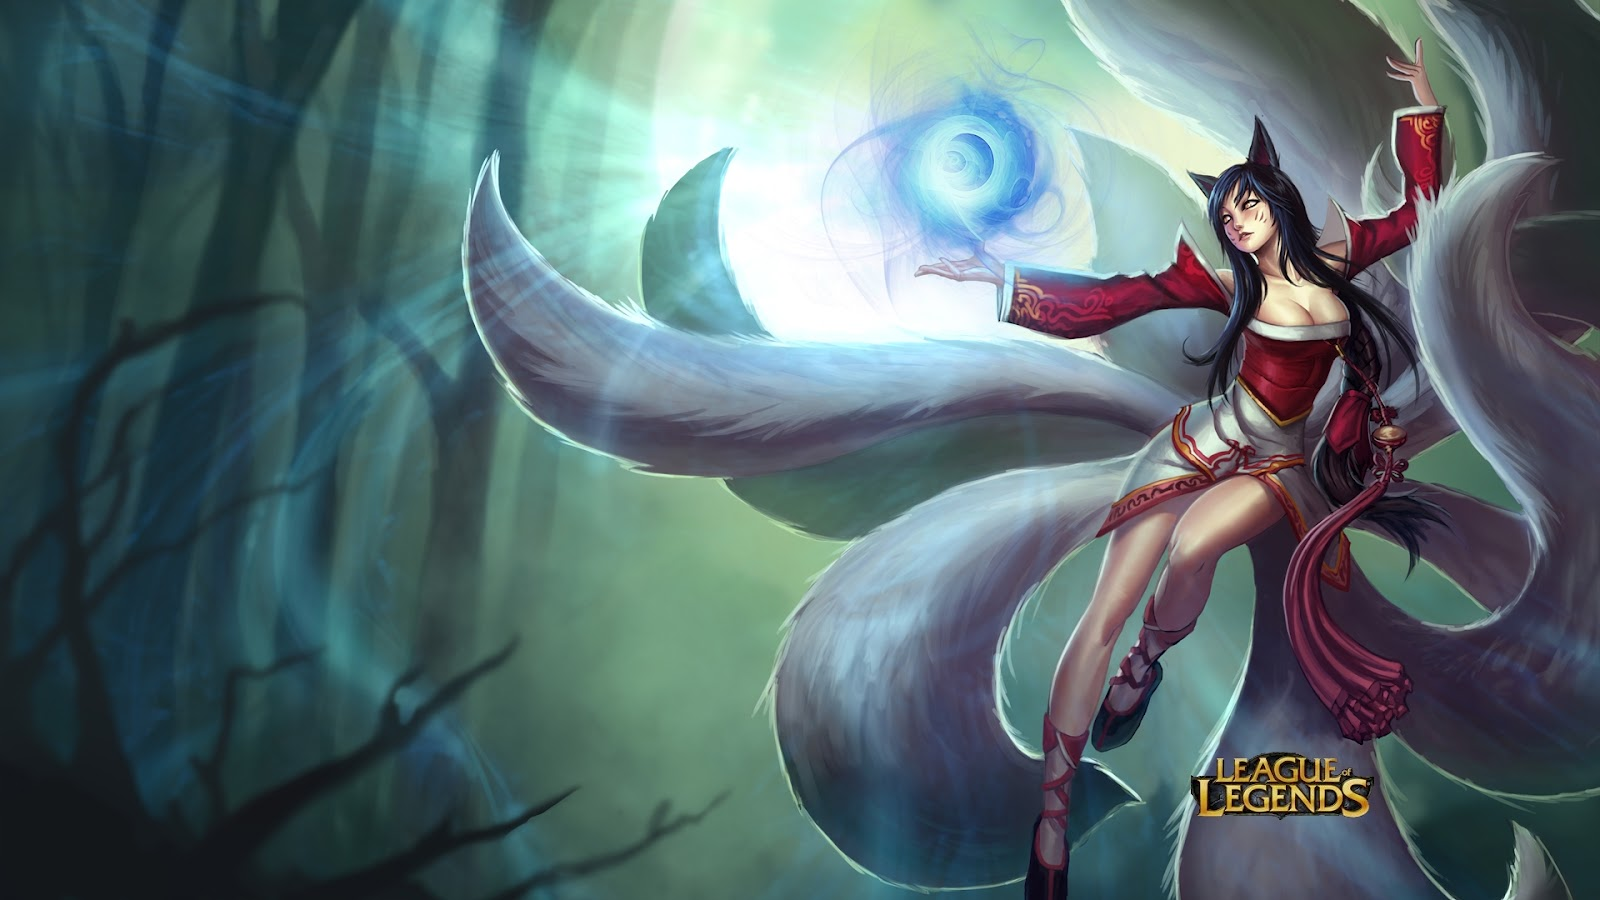 http://3.bp.blogspot.com/-e03B-hpJDJo/T9tDsgEsd4I/AAAAAAAAMiA/IfZ1Jqb0-Hk/s1600/League_Legends_Game_Wallpaper_ahri_1920x1080.jpg